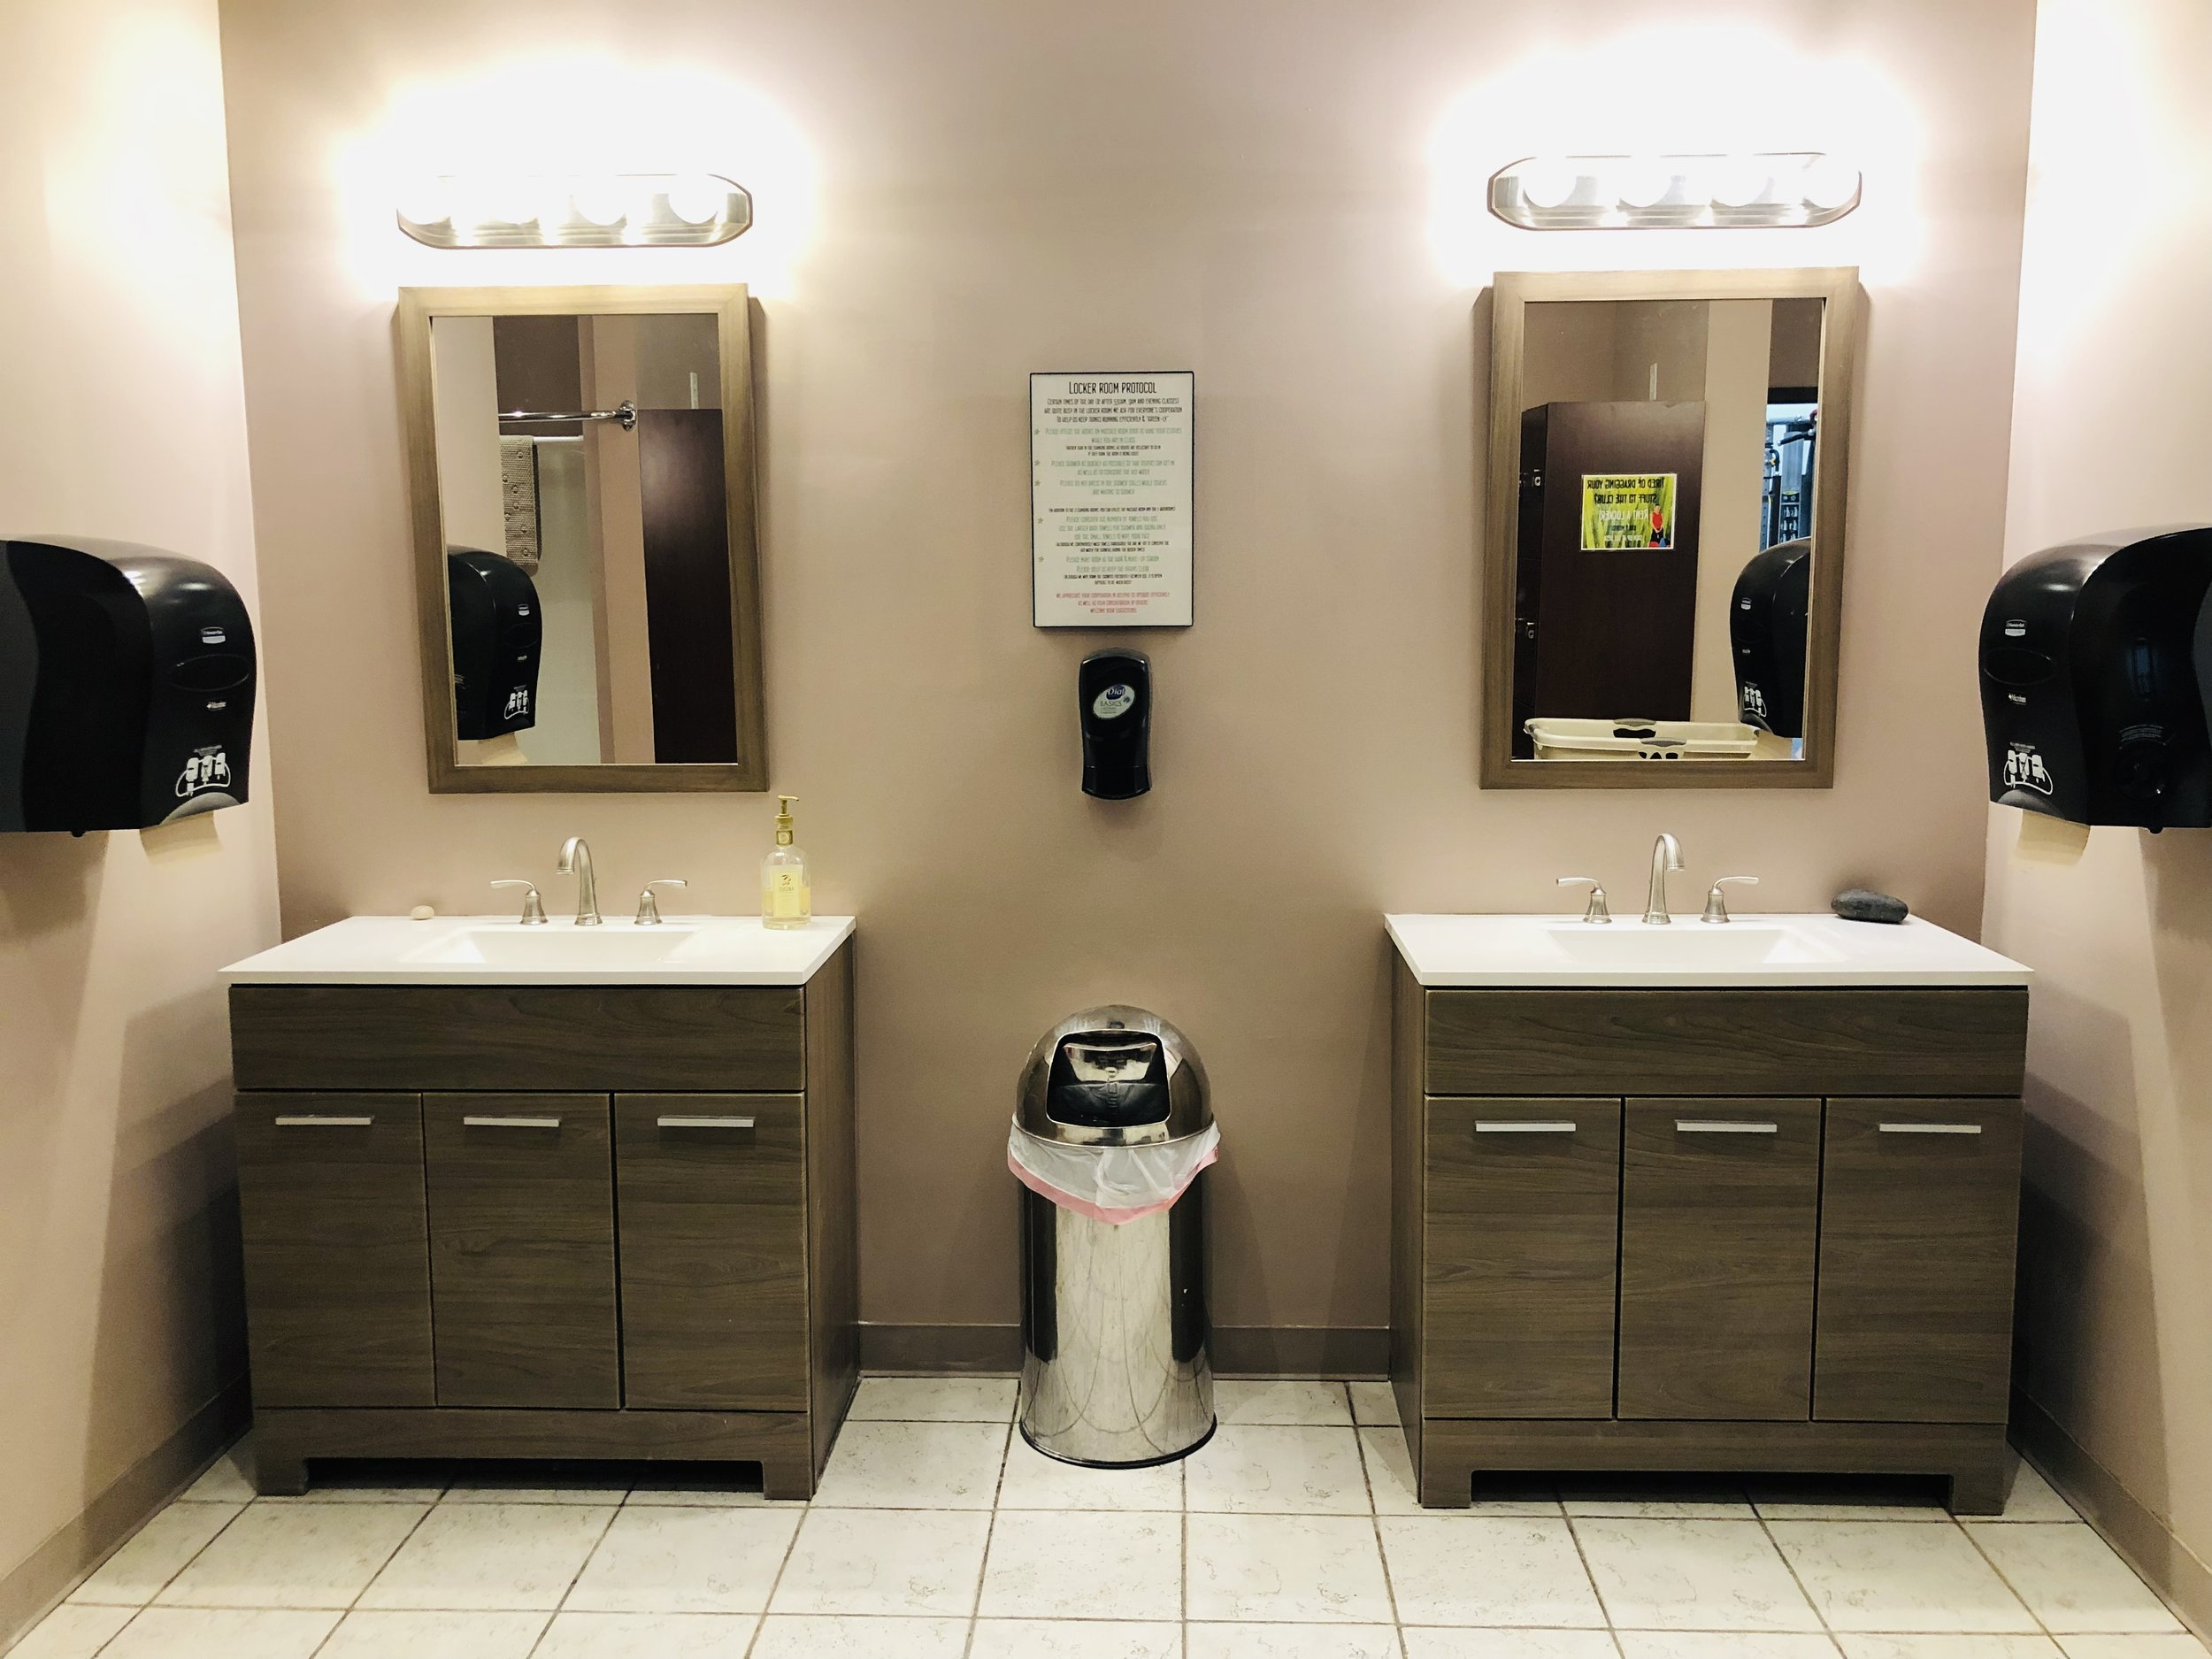 What if working on your health was actually the best part of your day? - Complimentary towel serviceFully equipped locker roomHydro massageInfrared saunas